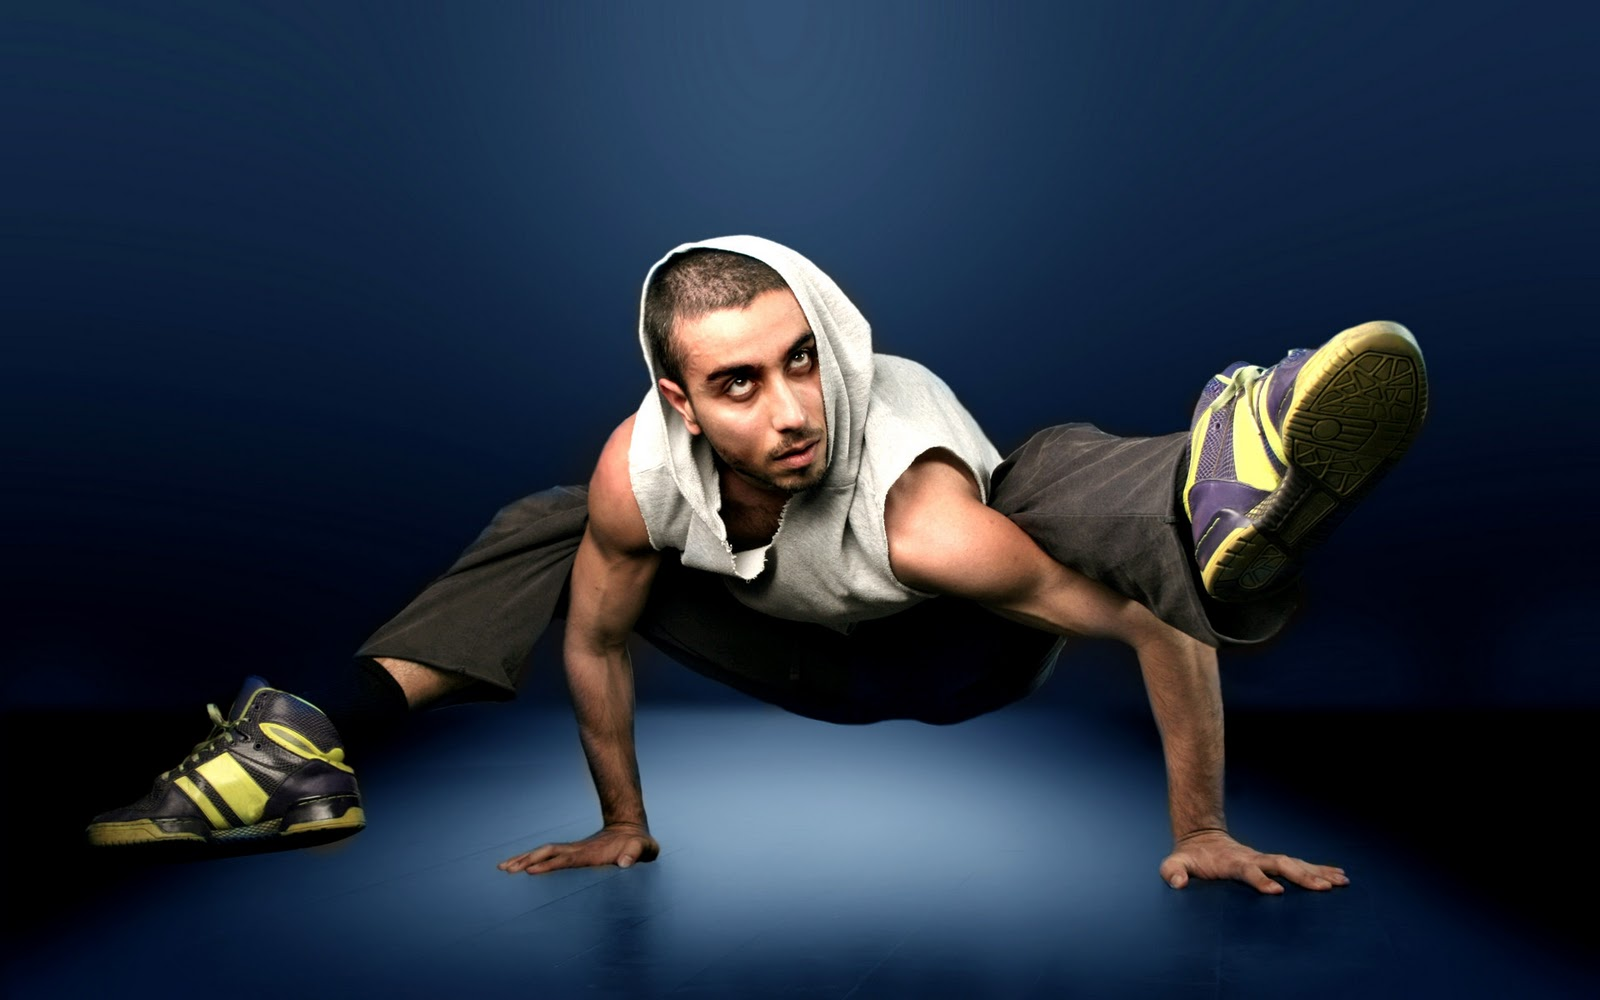 Photo And Wallpapers hip hop styles wallpapership hop 1600x1000